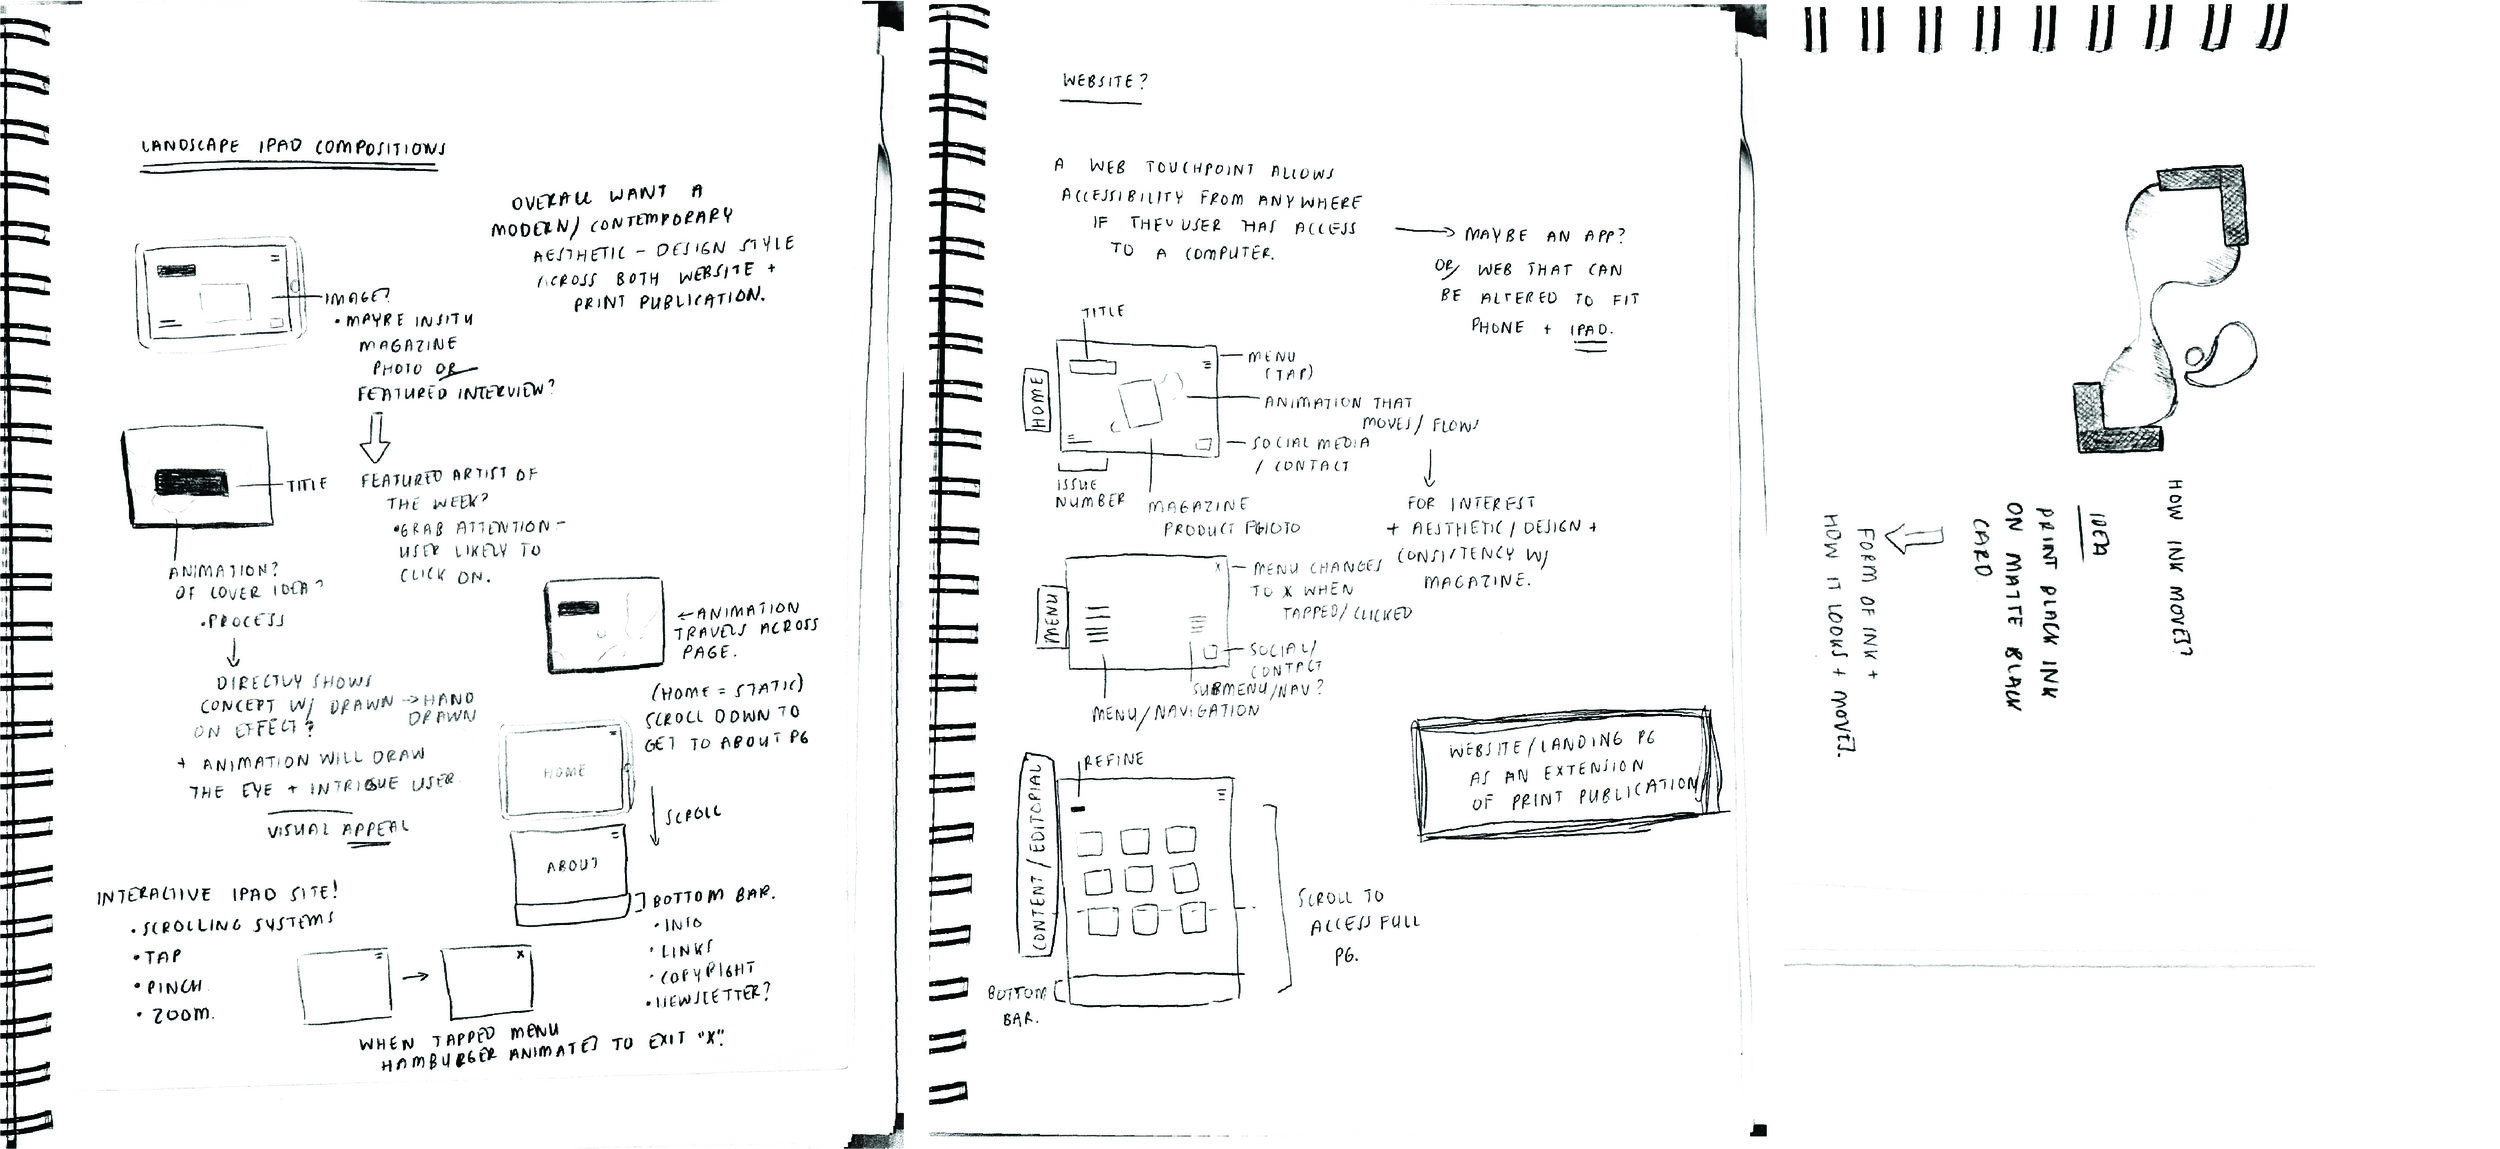 iPad composition sketches/ ideation from process workbook